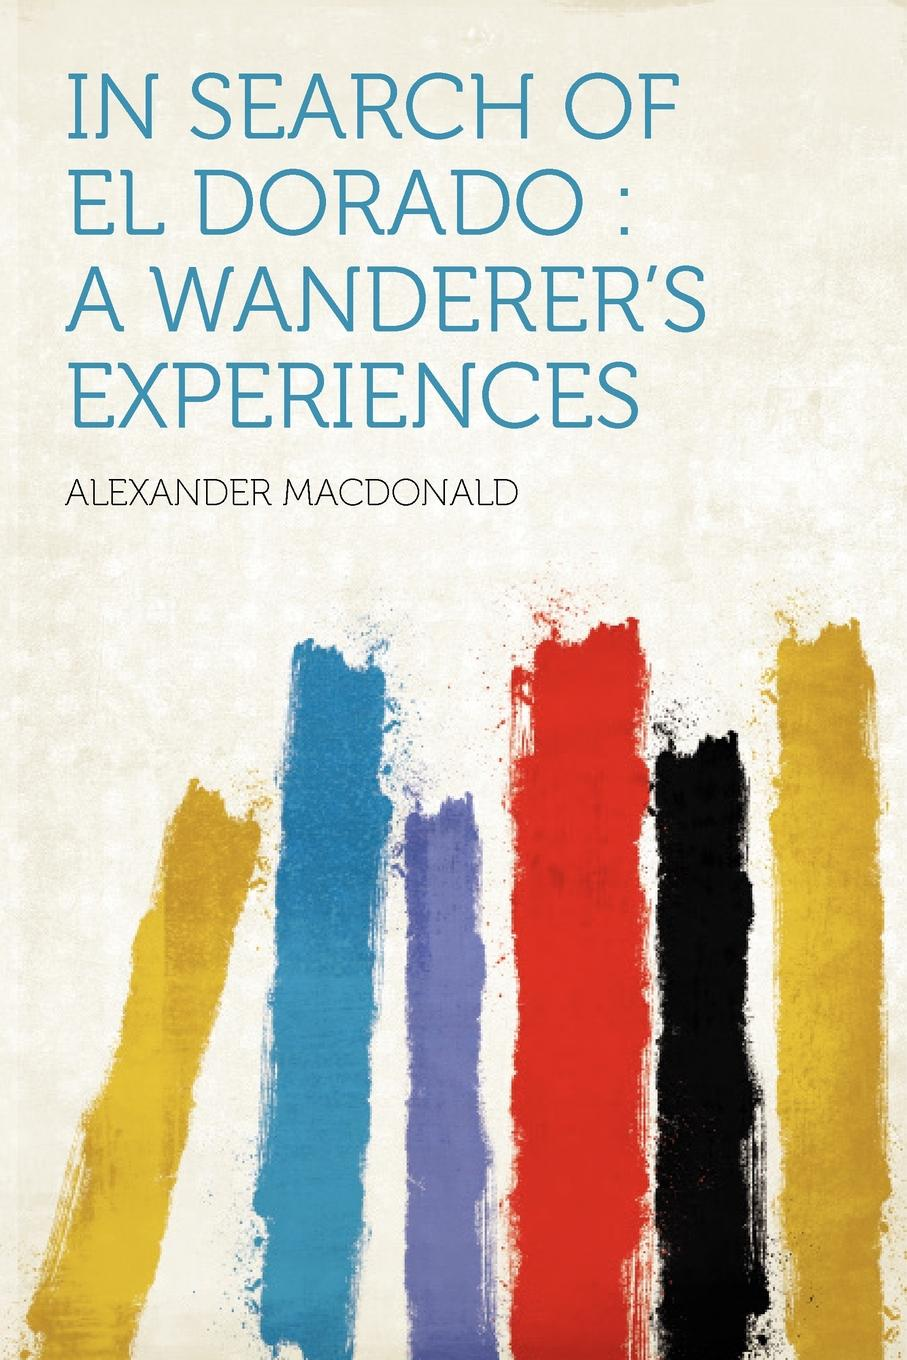 In Search of El Dorado. a Wanderer.s Experiences